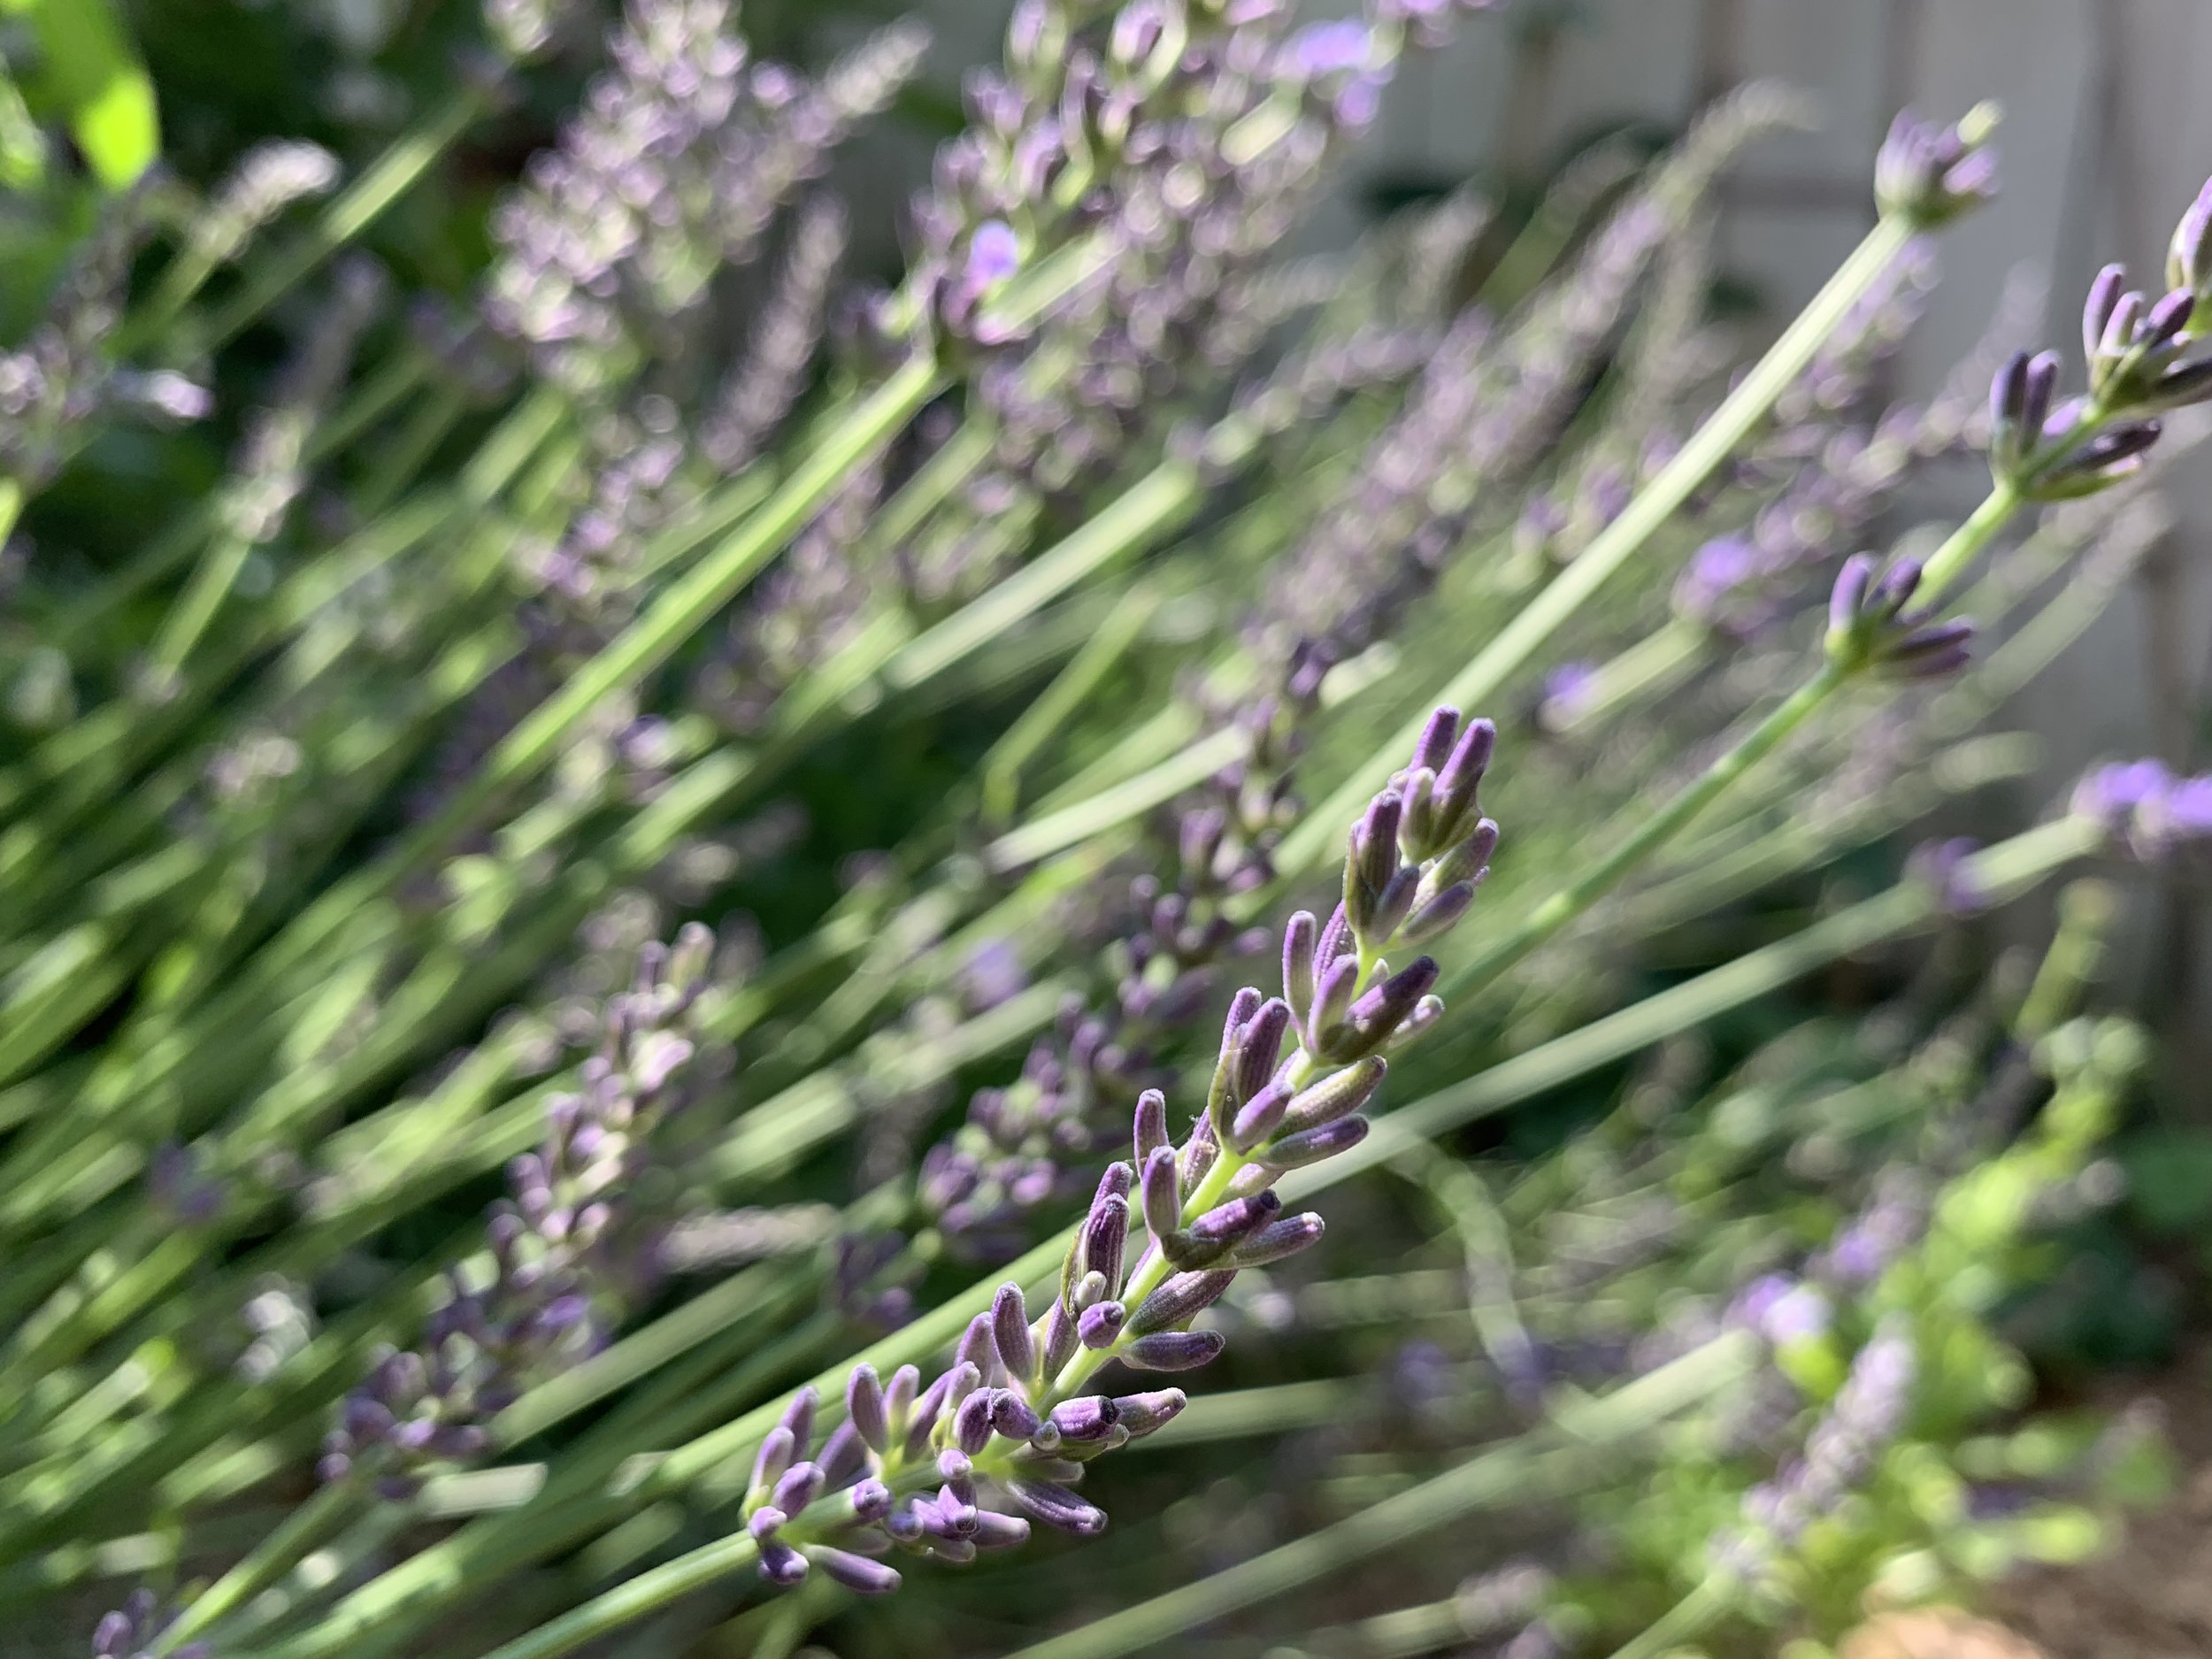 Do you want to learn more about herbs? - Your feedback will guide future courses!